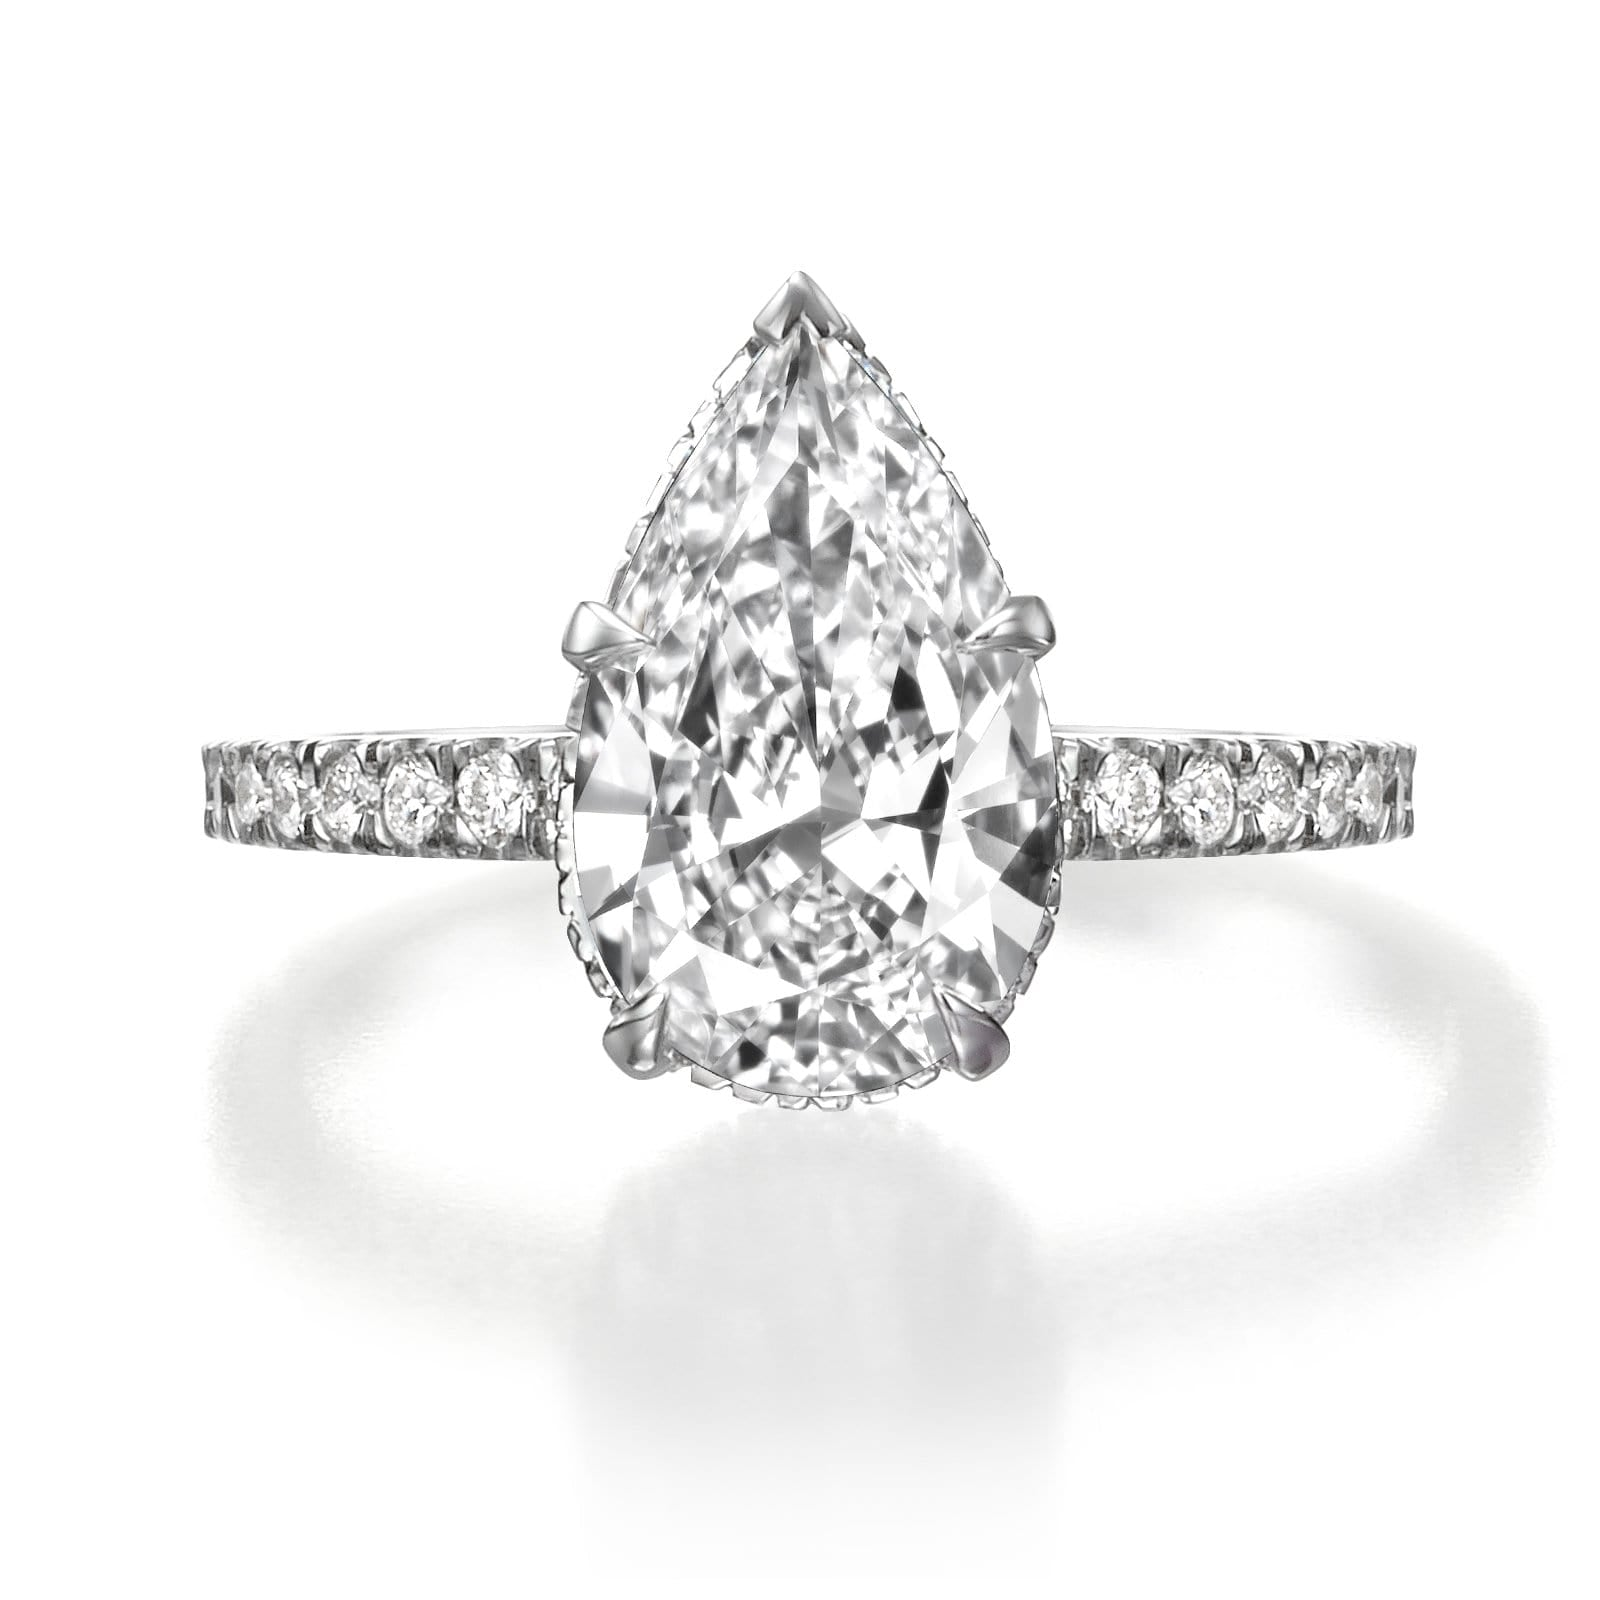 3.20 ct Pear Shaped Diamond Engagement Ring